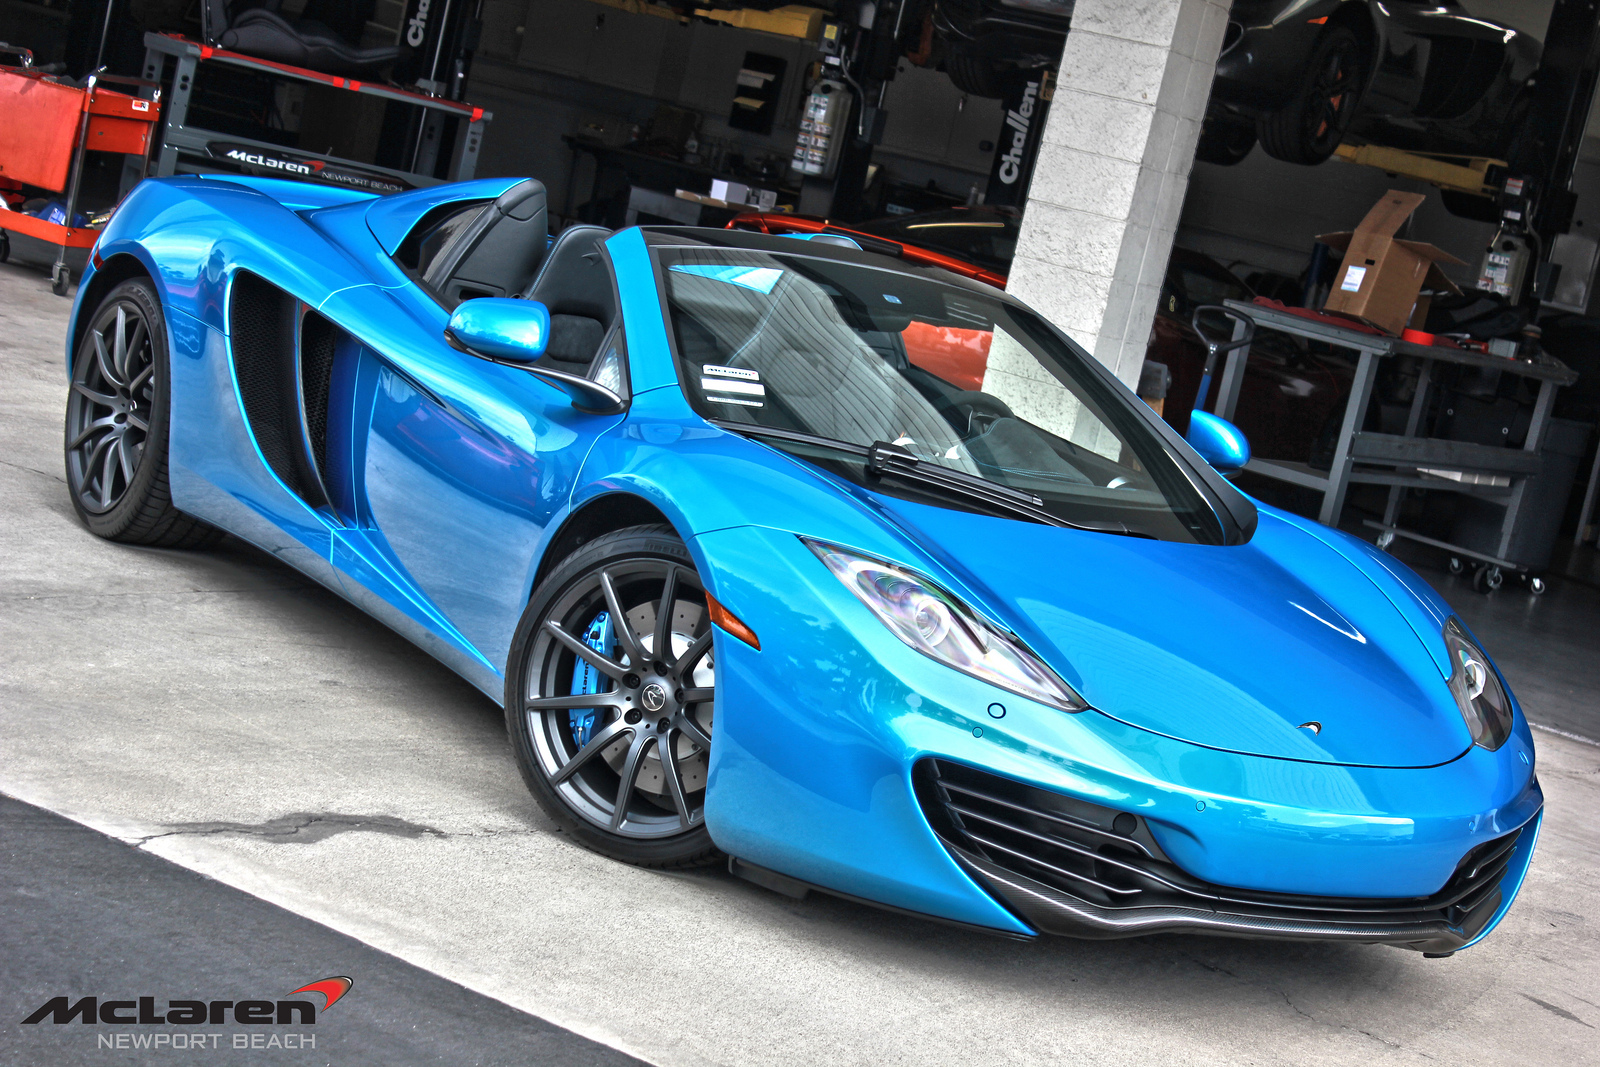 gallery: blue mclaren 12c spider at mclaren newport beach - gtspirit